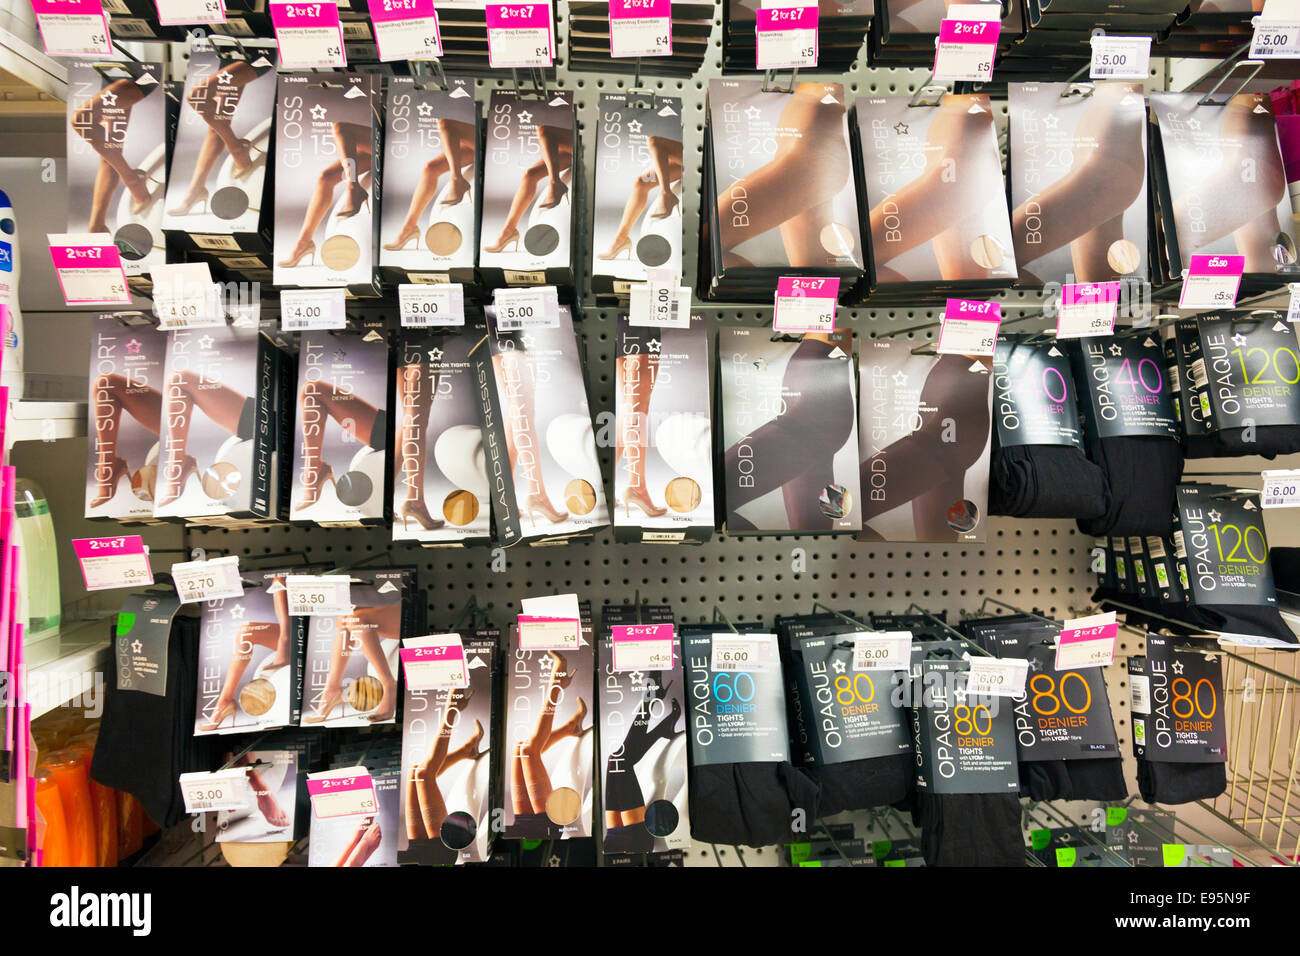 nylon tights nylons stockings boxed boxes product products on shelf at chemist Chemists shop store inside display - Stock Image